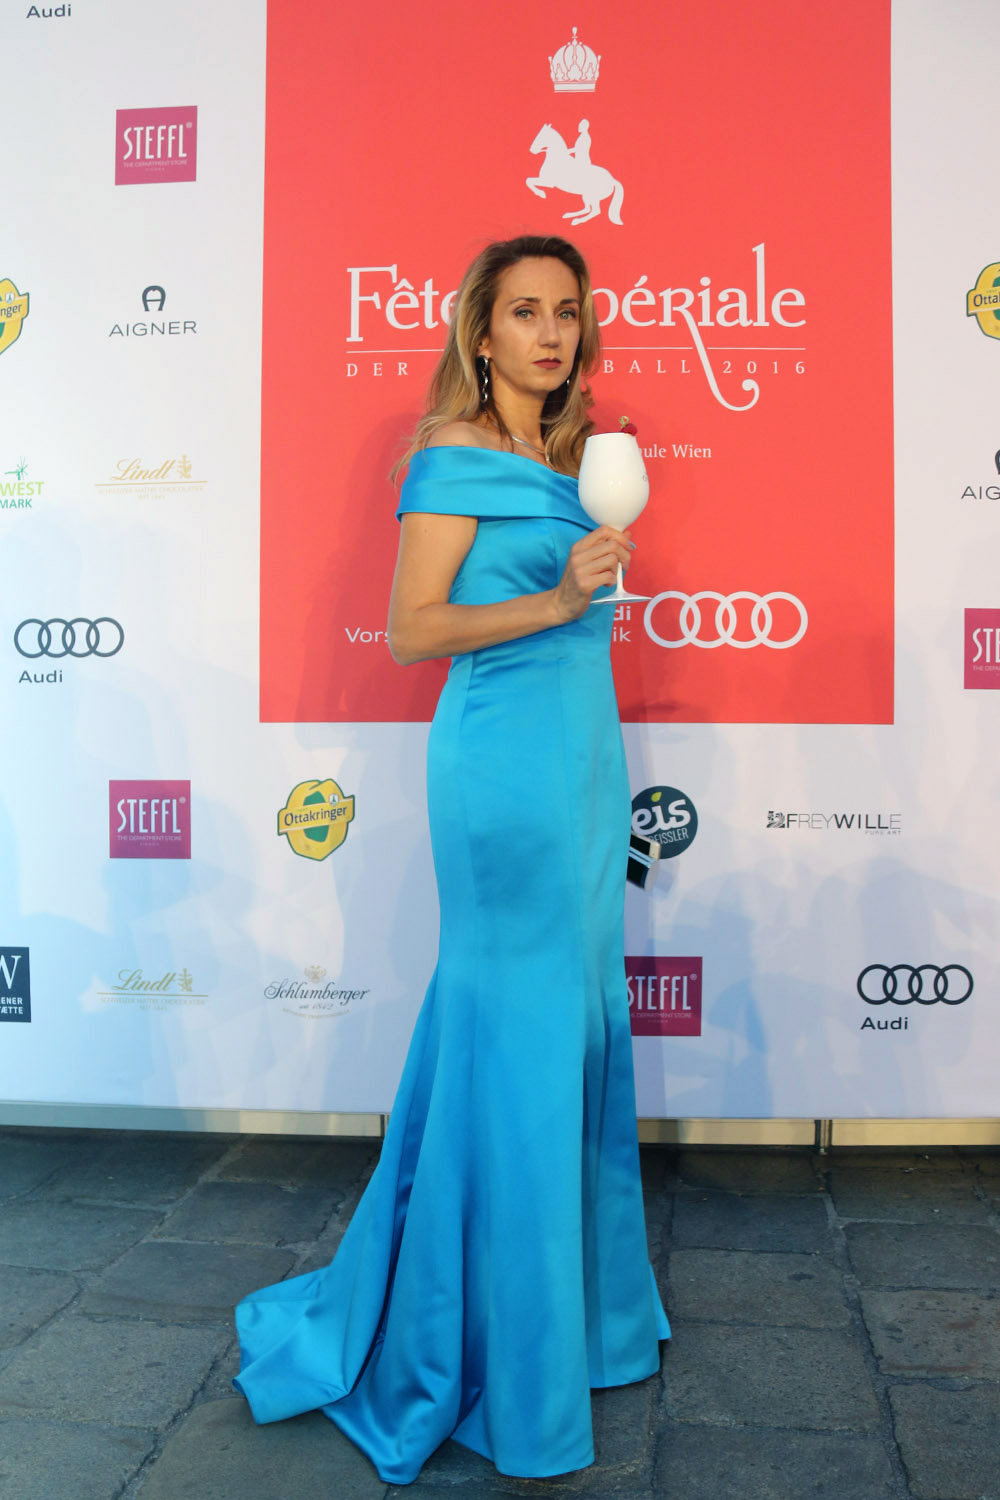 colourclub-fete-imperiale-outfit-flossmann-off-shoulder-dress-hofburg-viennavball-sommerball-michaelerplatz-10